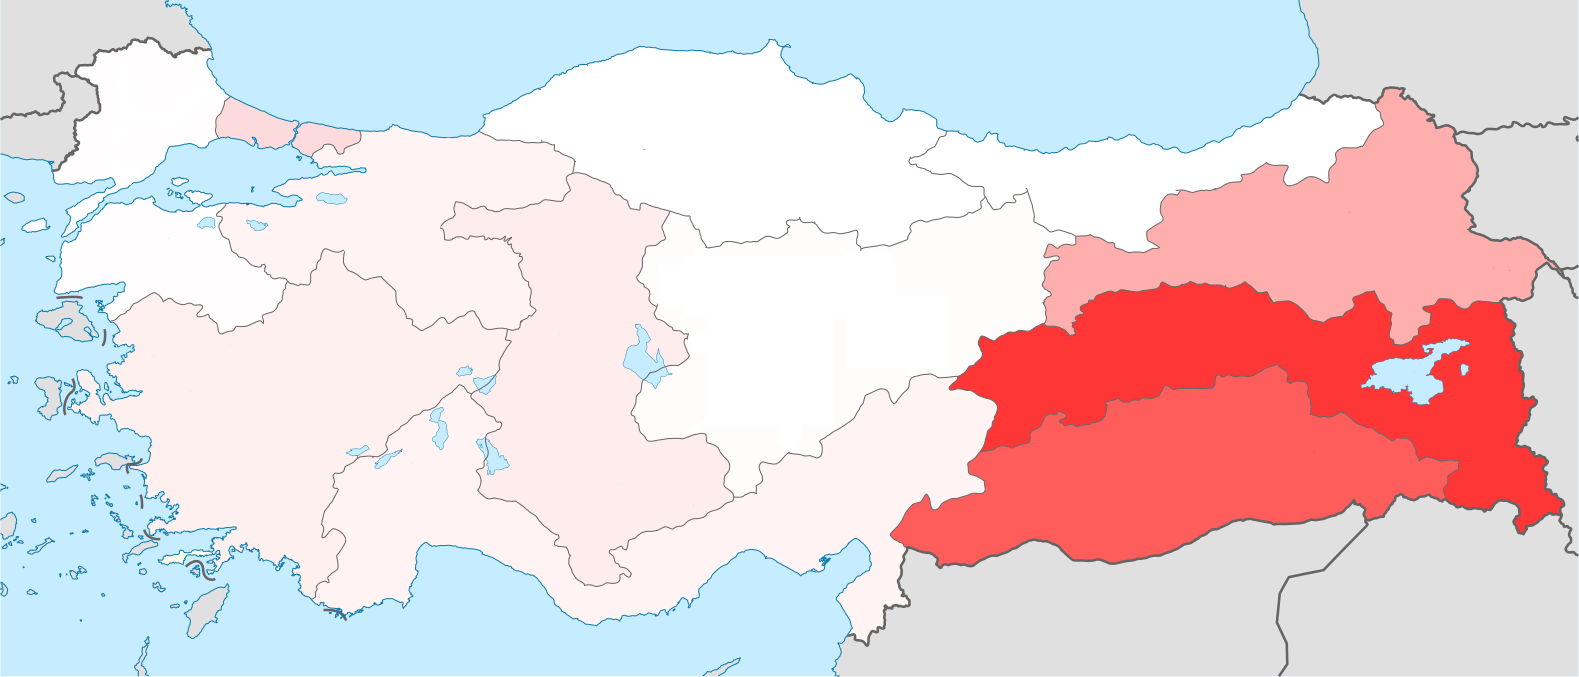 Kurdish_population_by_region_(KONDA_2010)